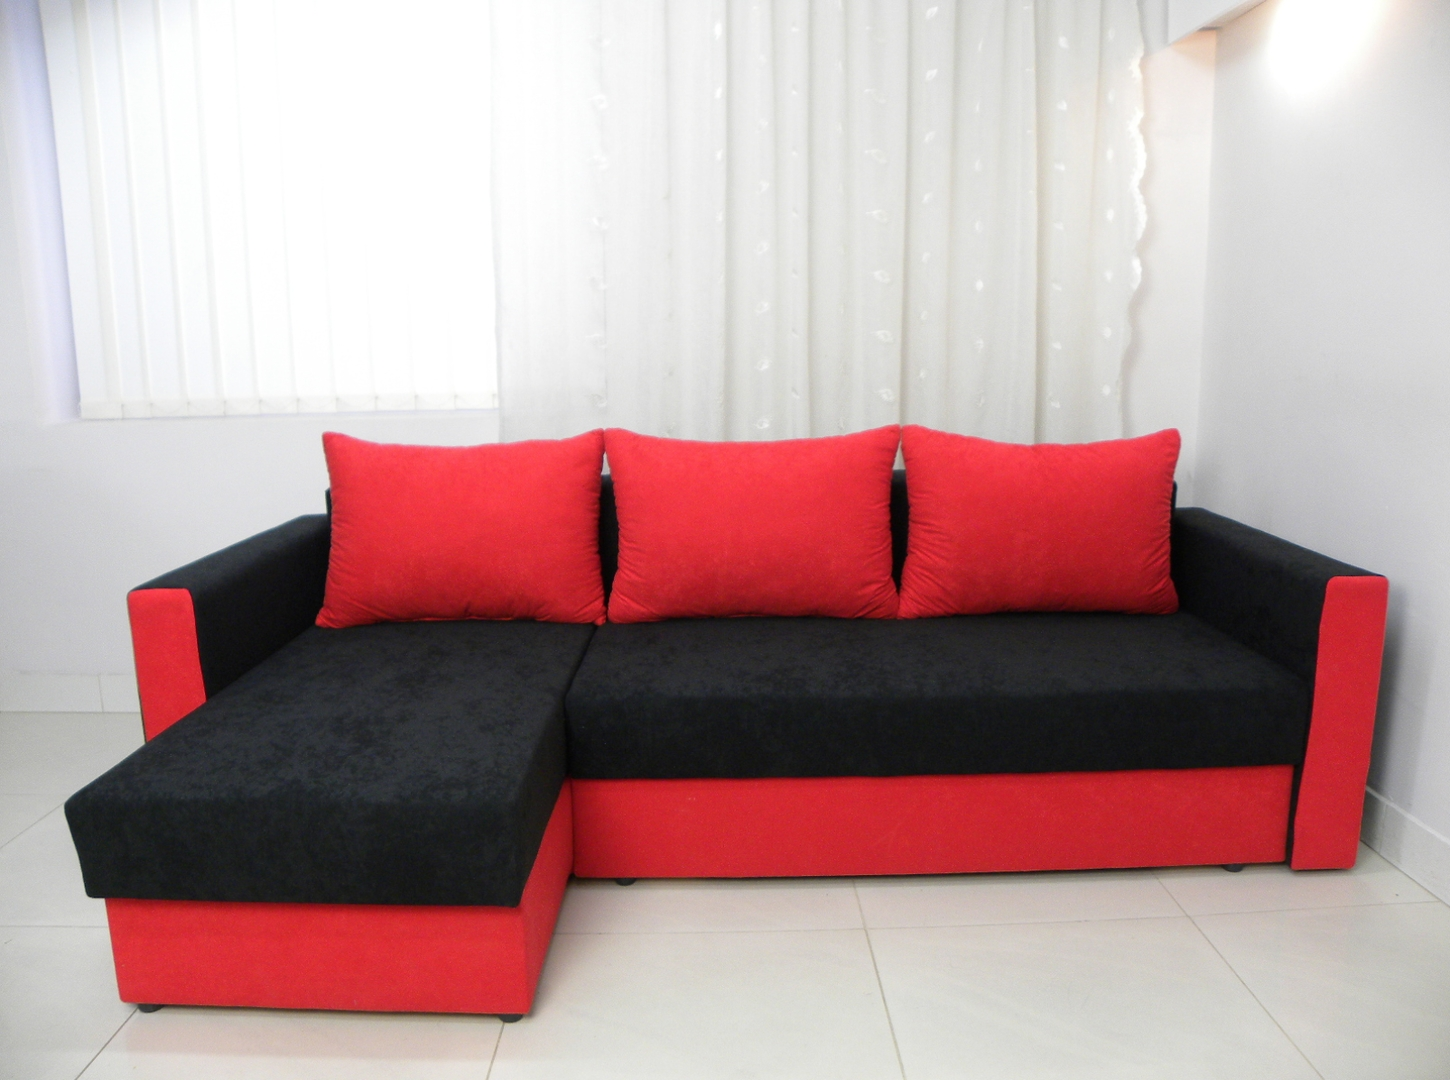 Corner Sofa Sale | Tehranmix Decoration inside Corner Sofa Bed Sale (Image 5 of 30)